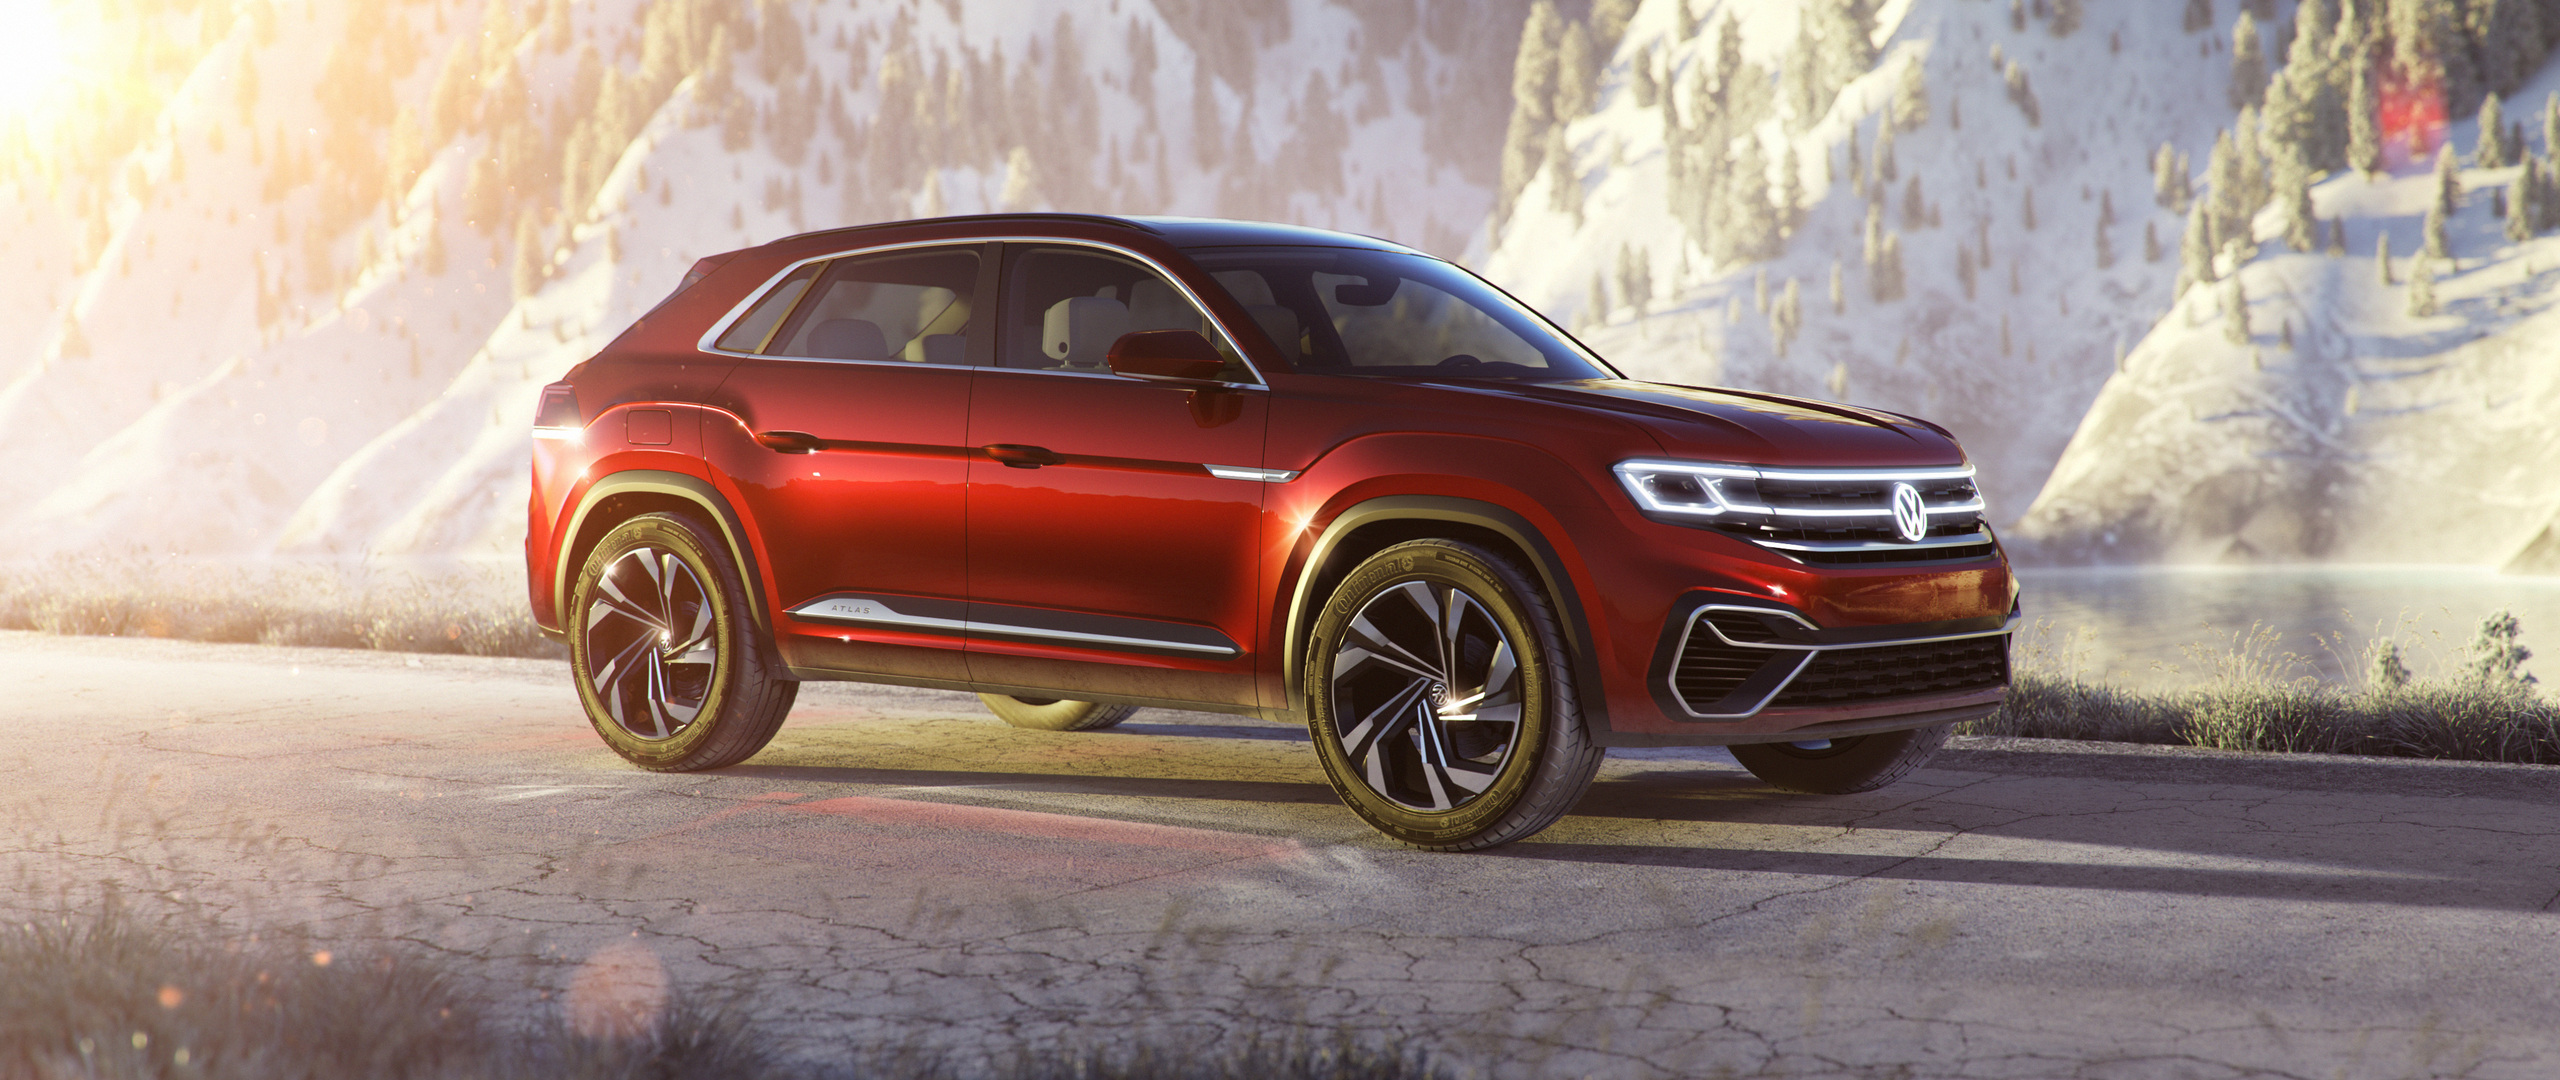 volkswagen-atlas-cross-sport-concept-2018-side-view-2g.jpg